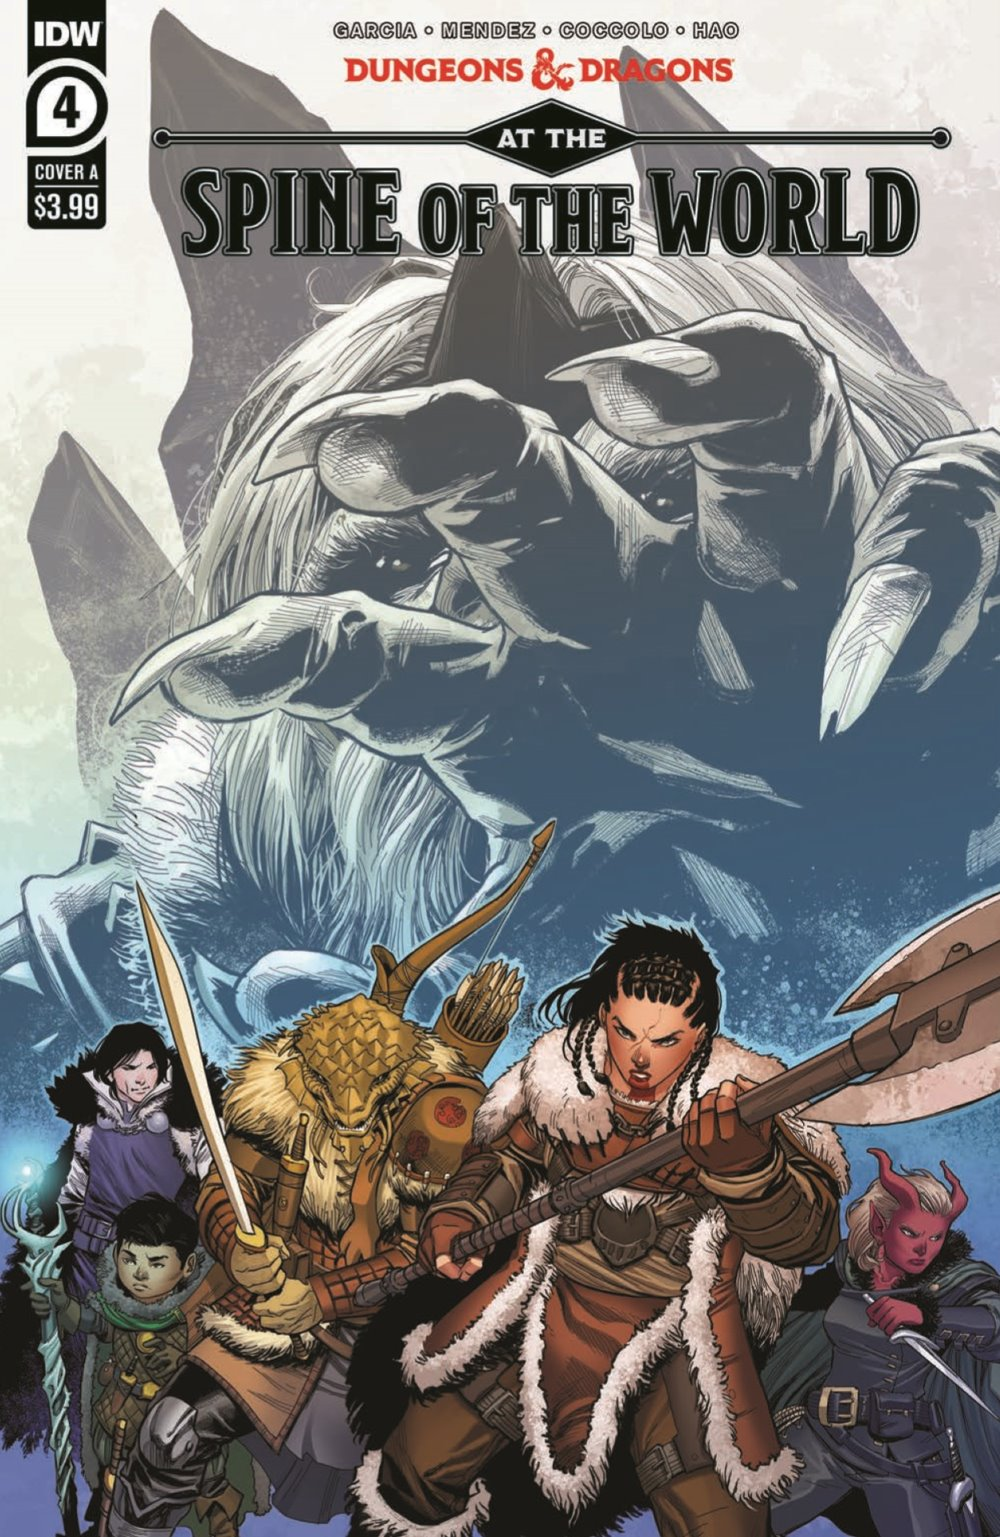 DD_ATSOTW04-pr-1 ComicList Previews: DUNGEONS AND DRAGONS AT THE SPINE OF THE WORLD #4 (OF 4)